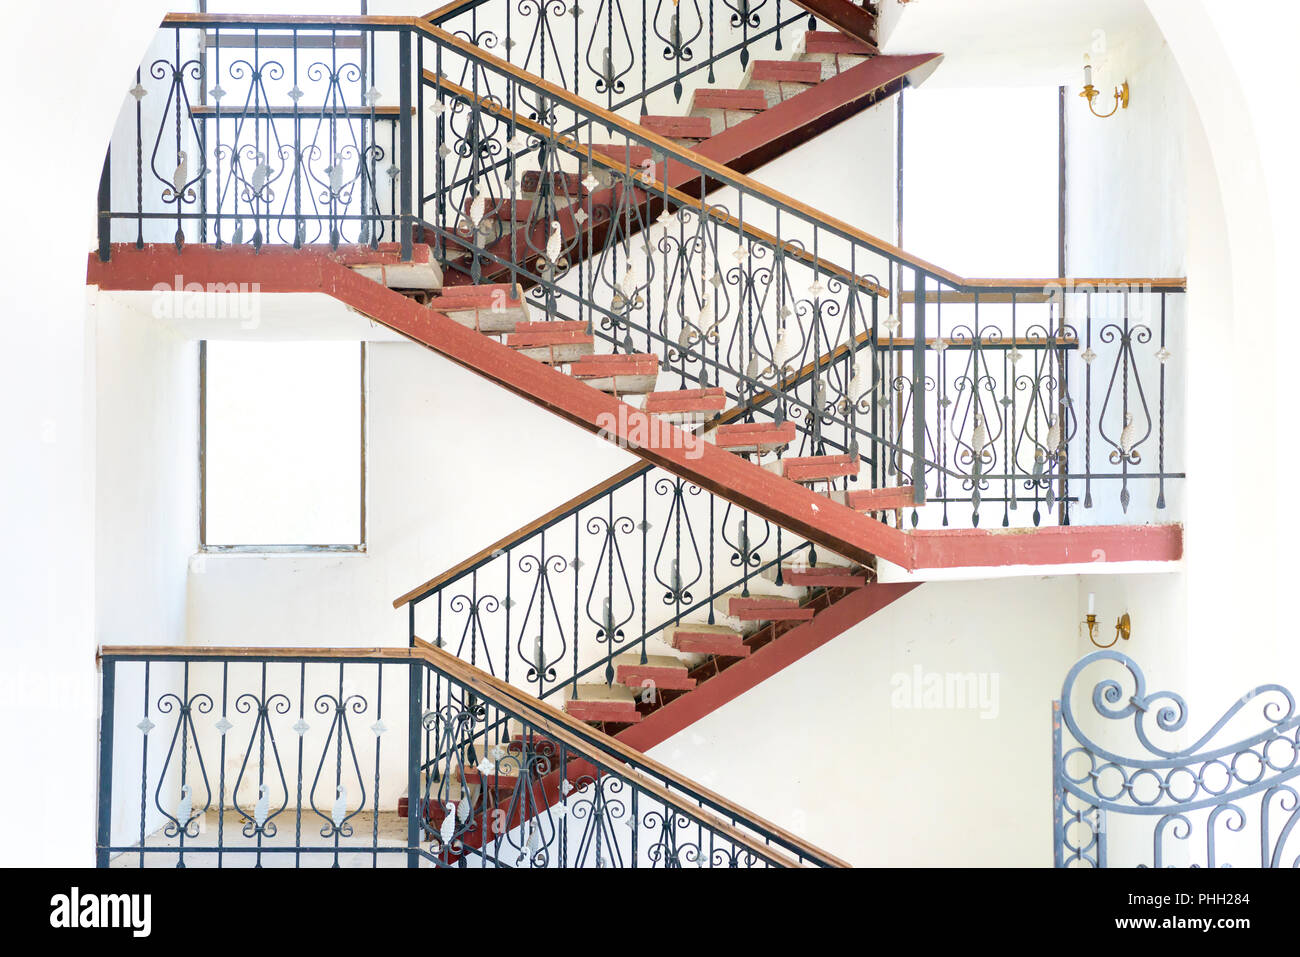 Ramp and staircases - Stock Image